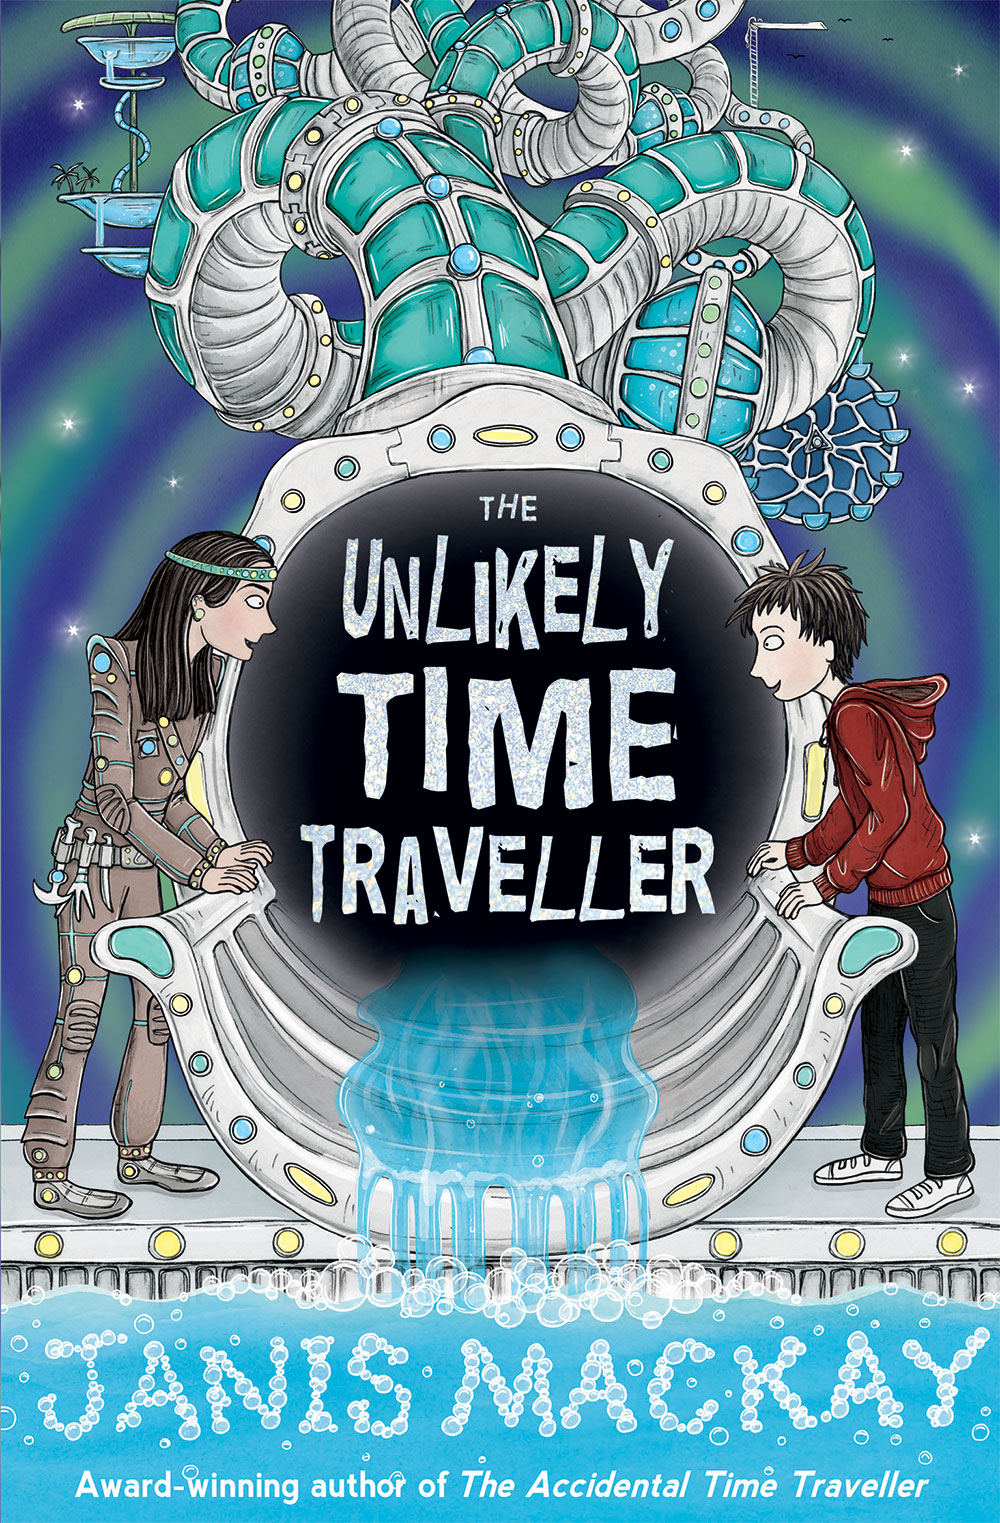 Q&A on Time Travel with Janis Mackay